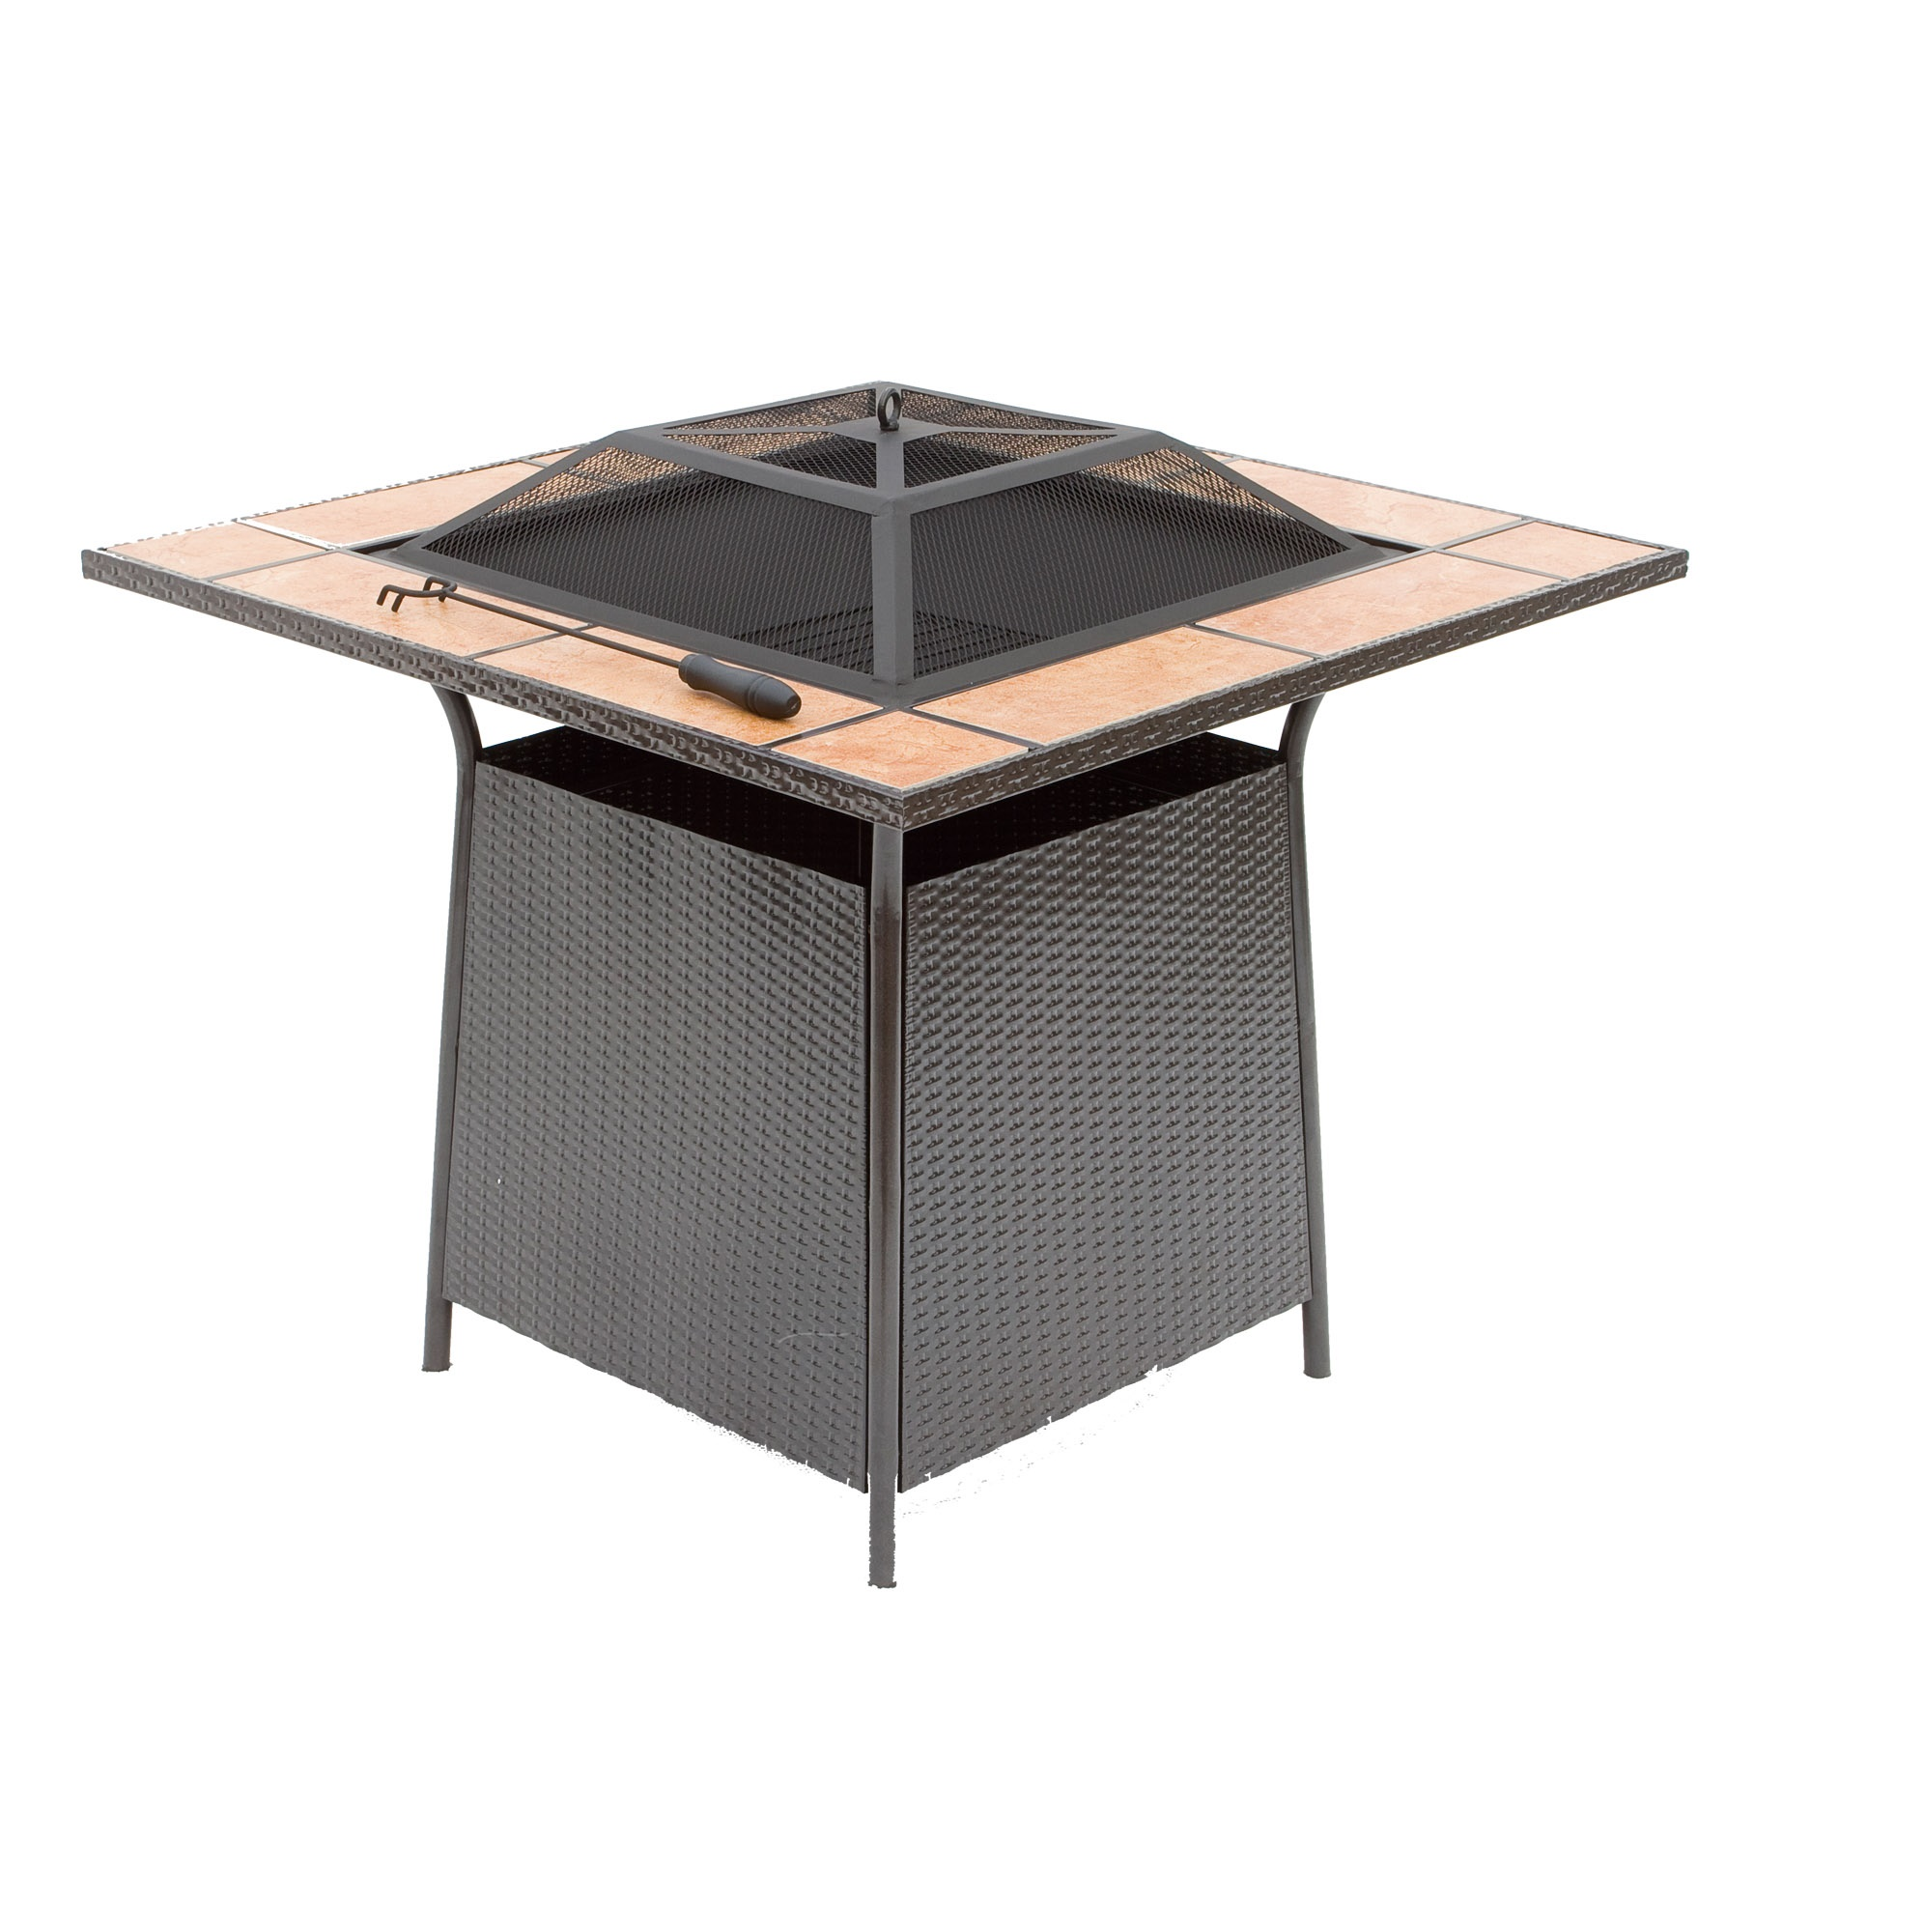 square outdoor garden rattan like fire pit with tile top coffee table buy coffee table outdoor fire pit firepits product on alibaba com